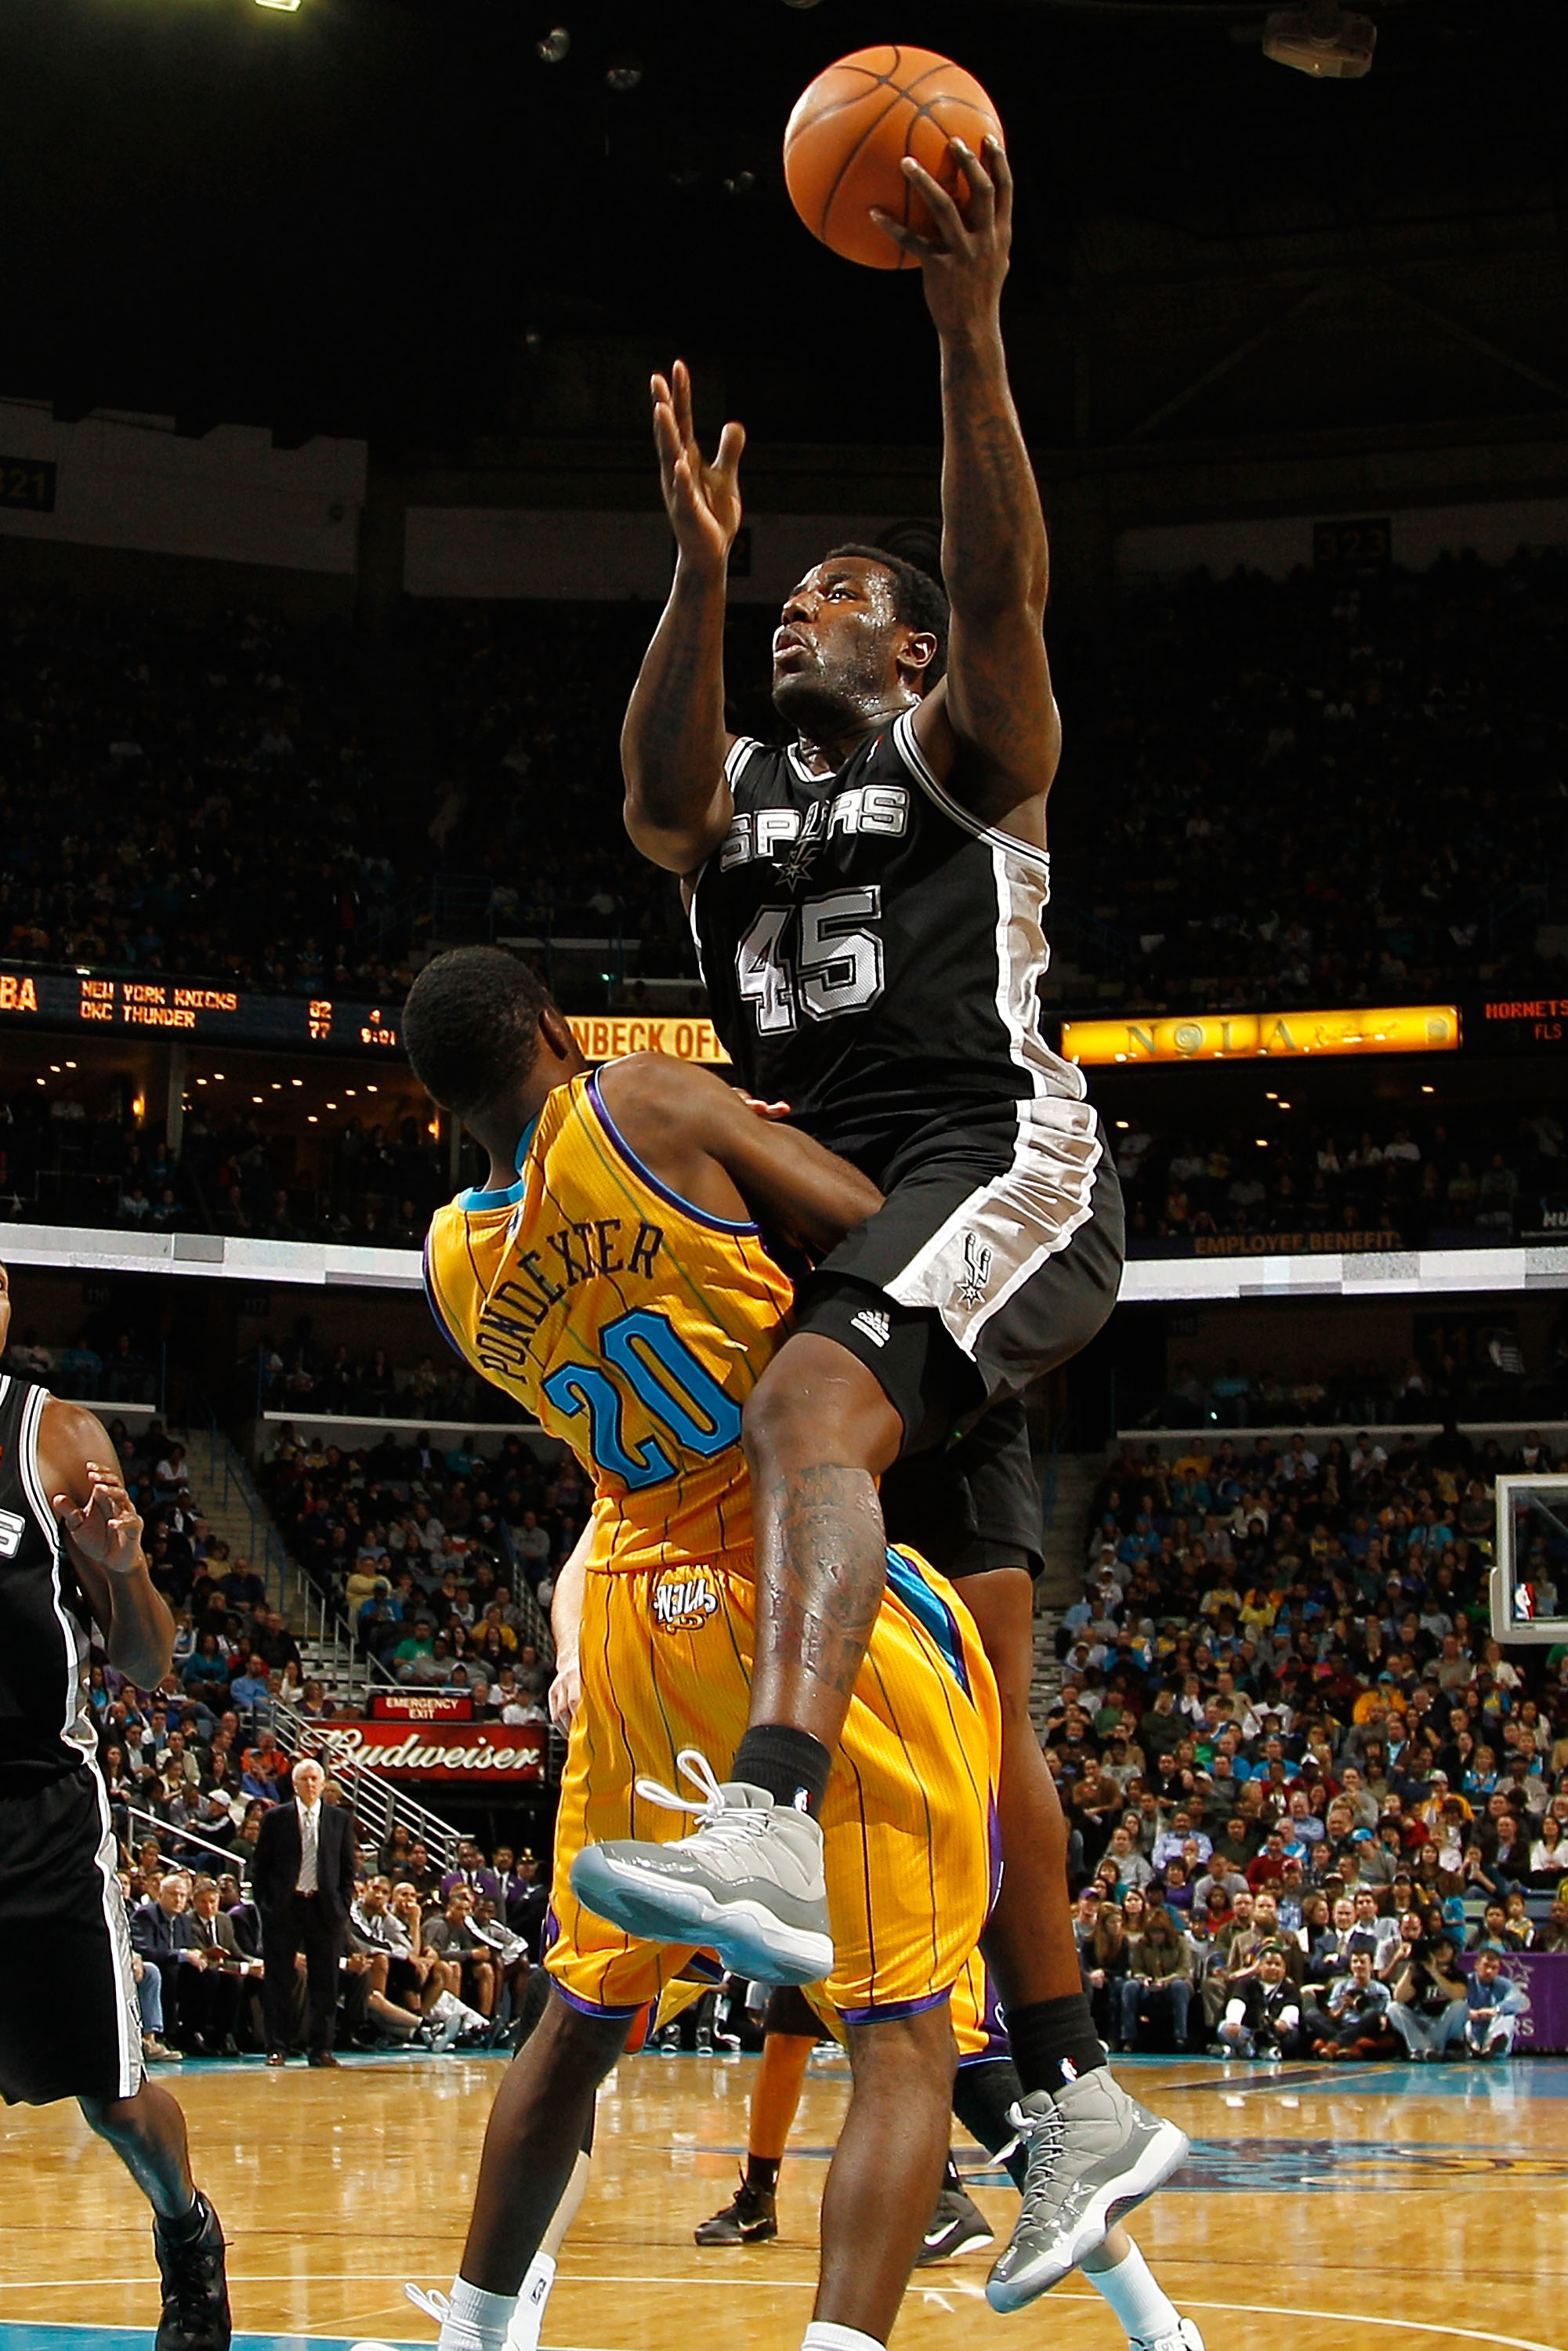 NEW ORLEANS, LA - JANUARY 22:  DeJuan Blair #45 of the San Antonio Spurs shoots the ball over Quincy Pondexter #20 of the New Orleans Hornets at the New Orleans Arena on January 22, 2011 in New Orleans, Louisiana.  The Hornets defeated the Spurs 96-72.  N